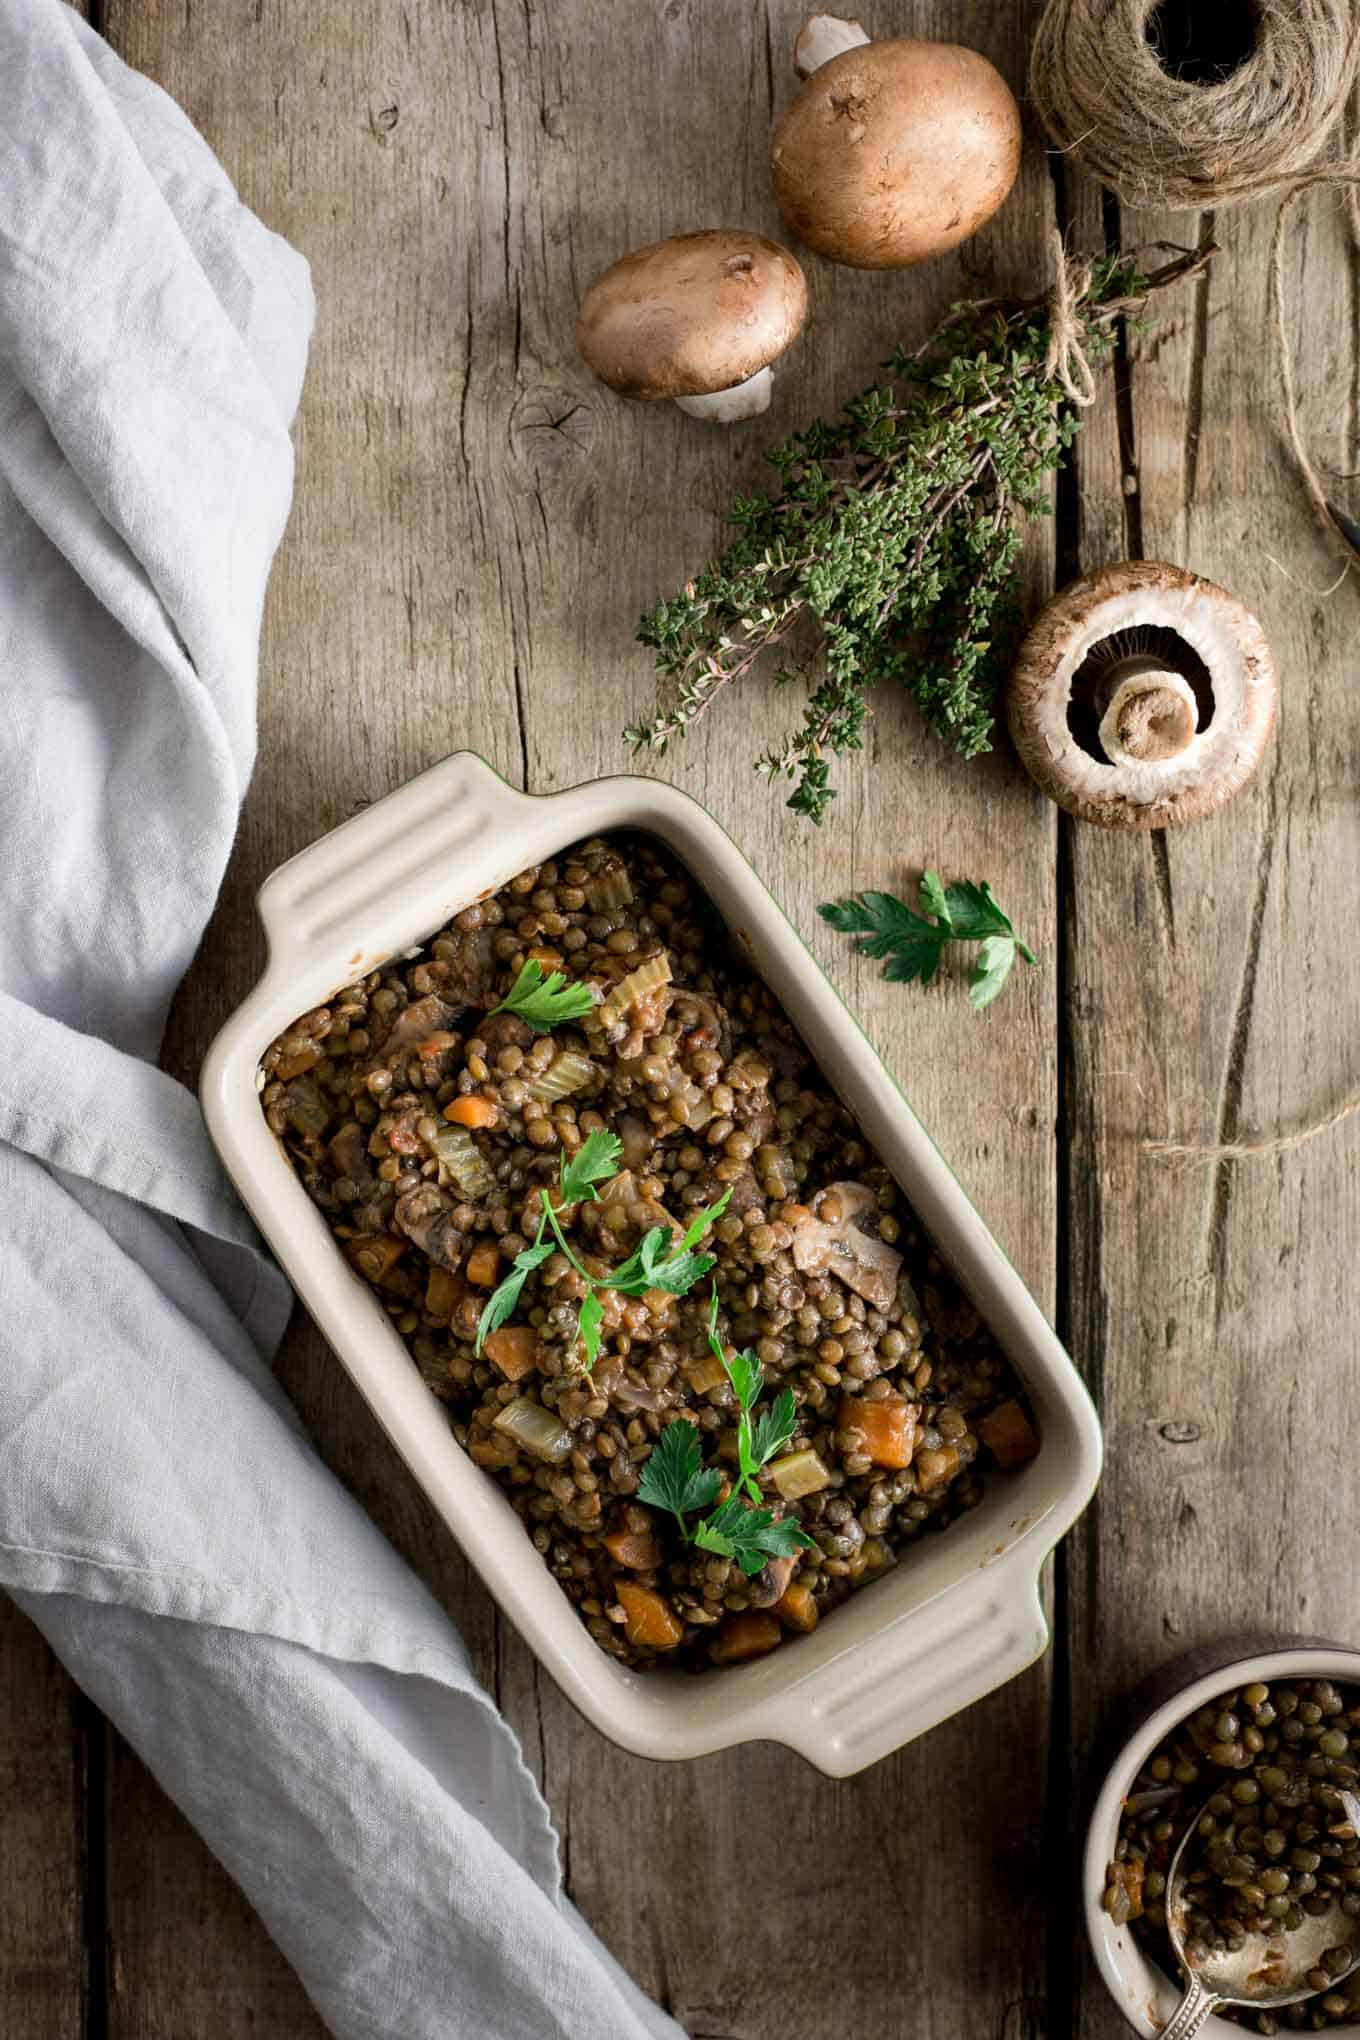 #Vegan lentil shepherd's pie. The all-time favourite for the whole family! #veggiepie #shepherdspie | via @annabanana.co